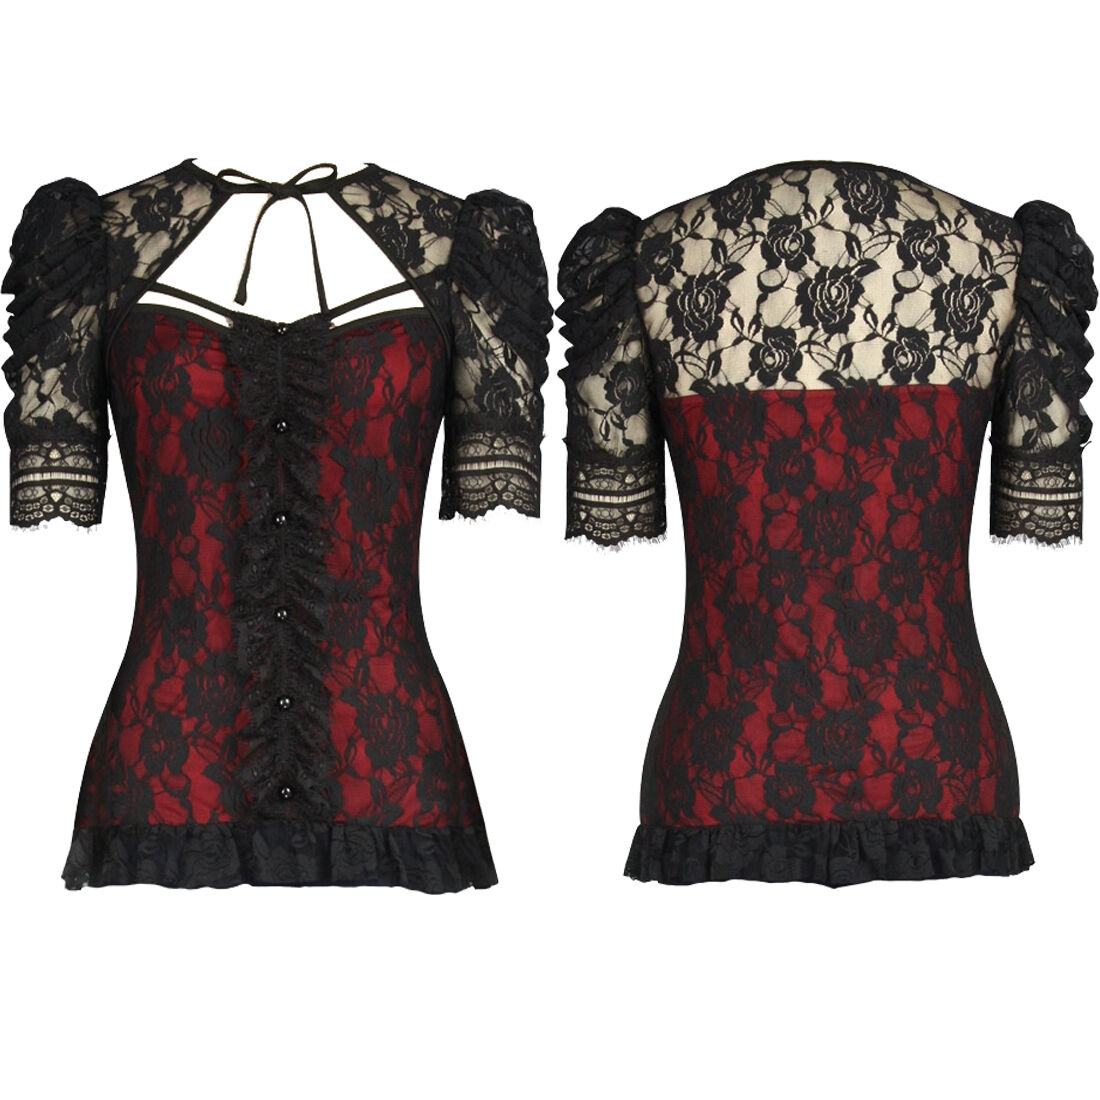 Red Steampunk Gothic Victorian Retro gathered Top Blouse with tie back 8 to 30